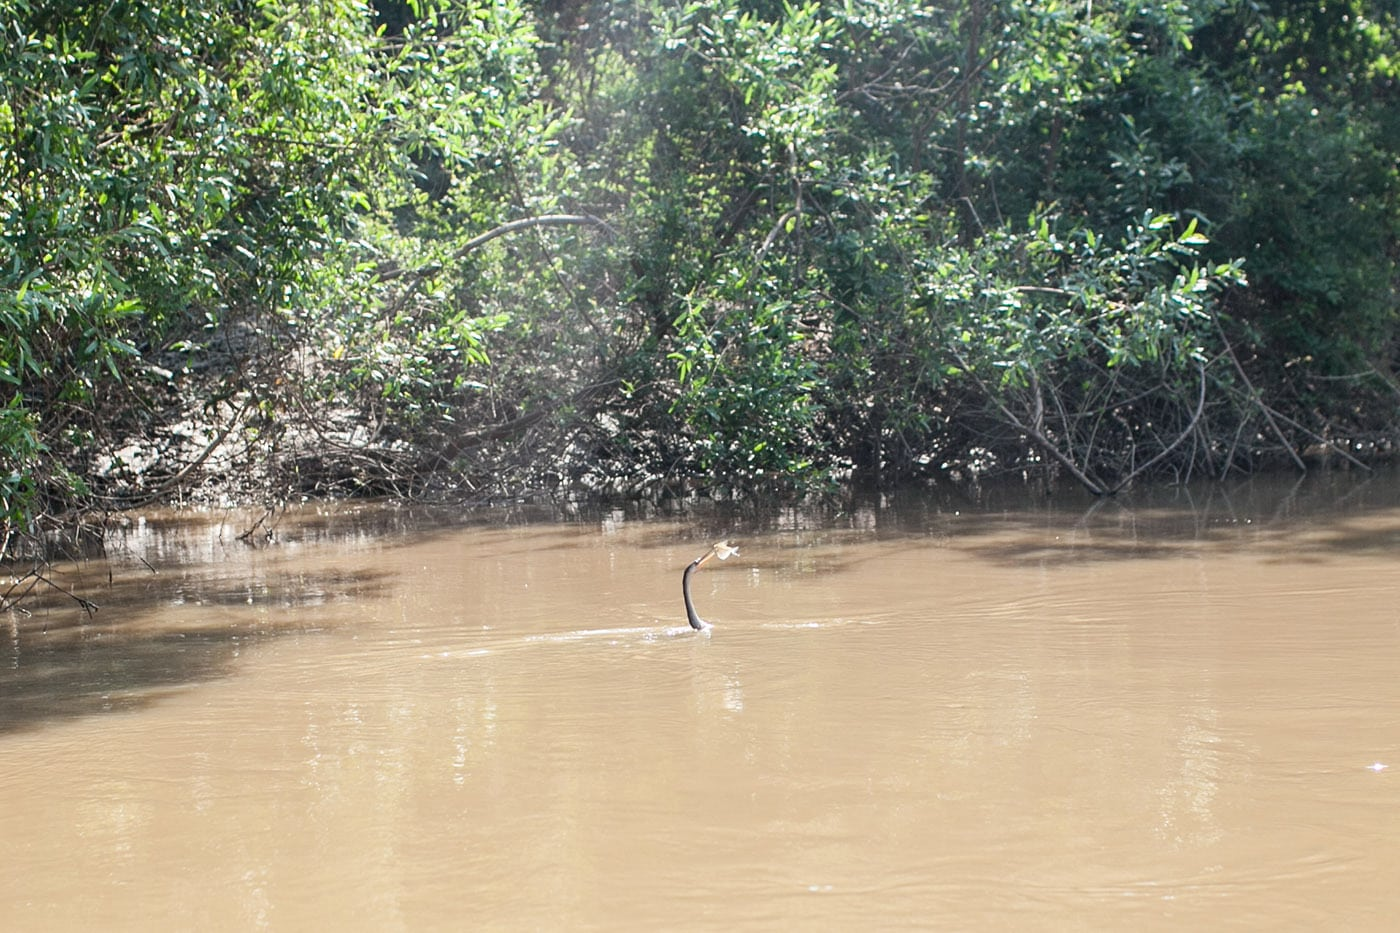 Bird Catching a fish - The Pampas in the Bolivian Amazon